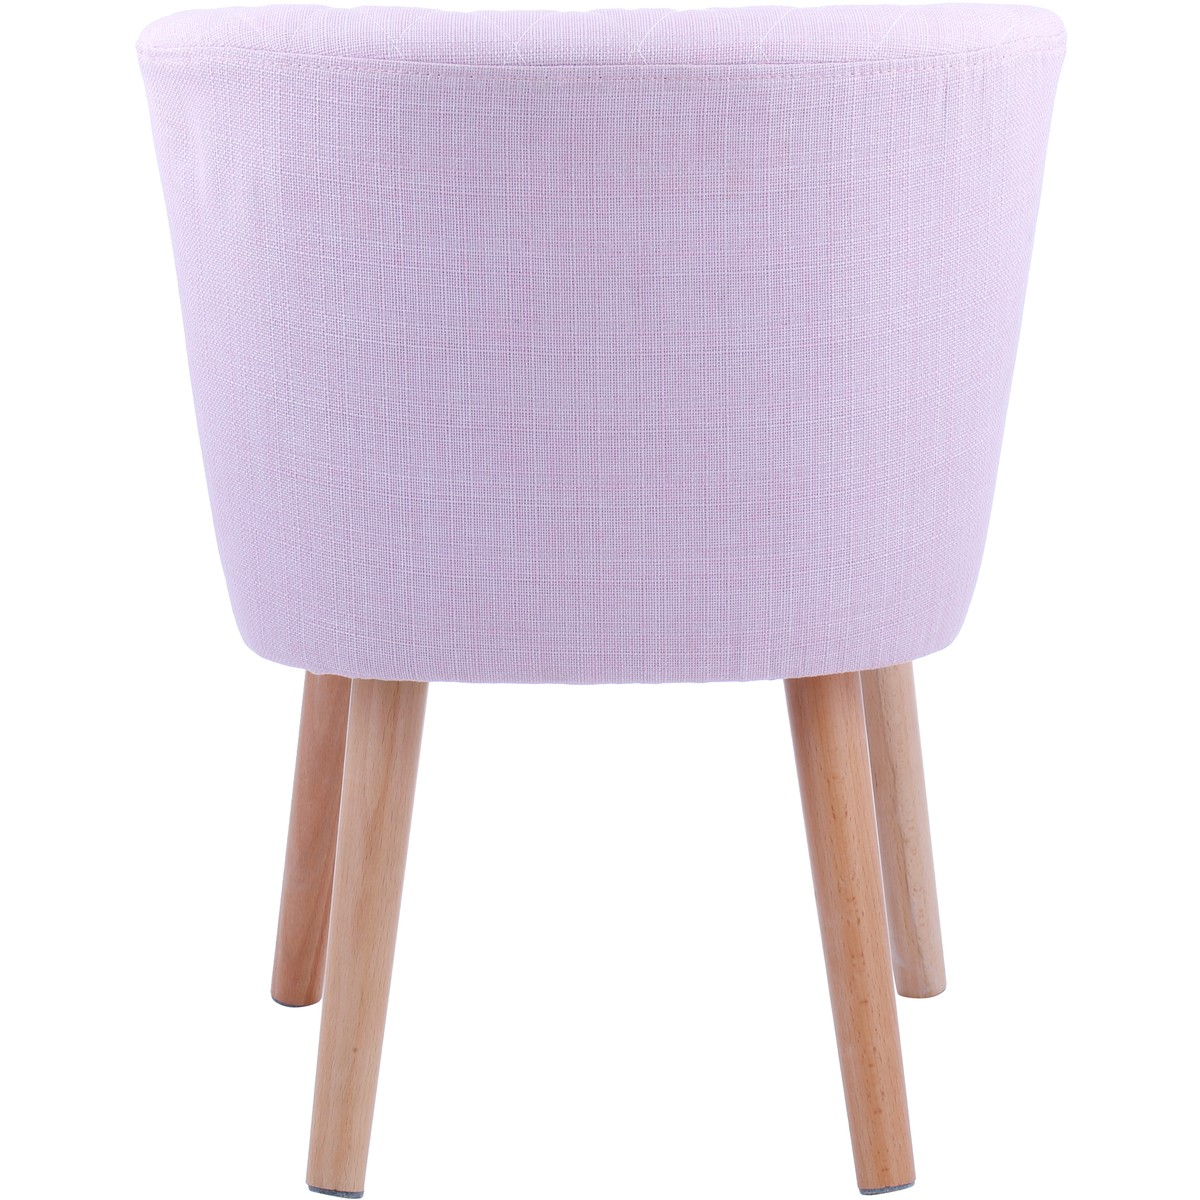 Big W Kids Chair Kodu Kids Upholstered Chair Pink